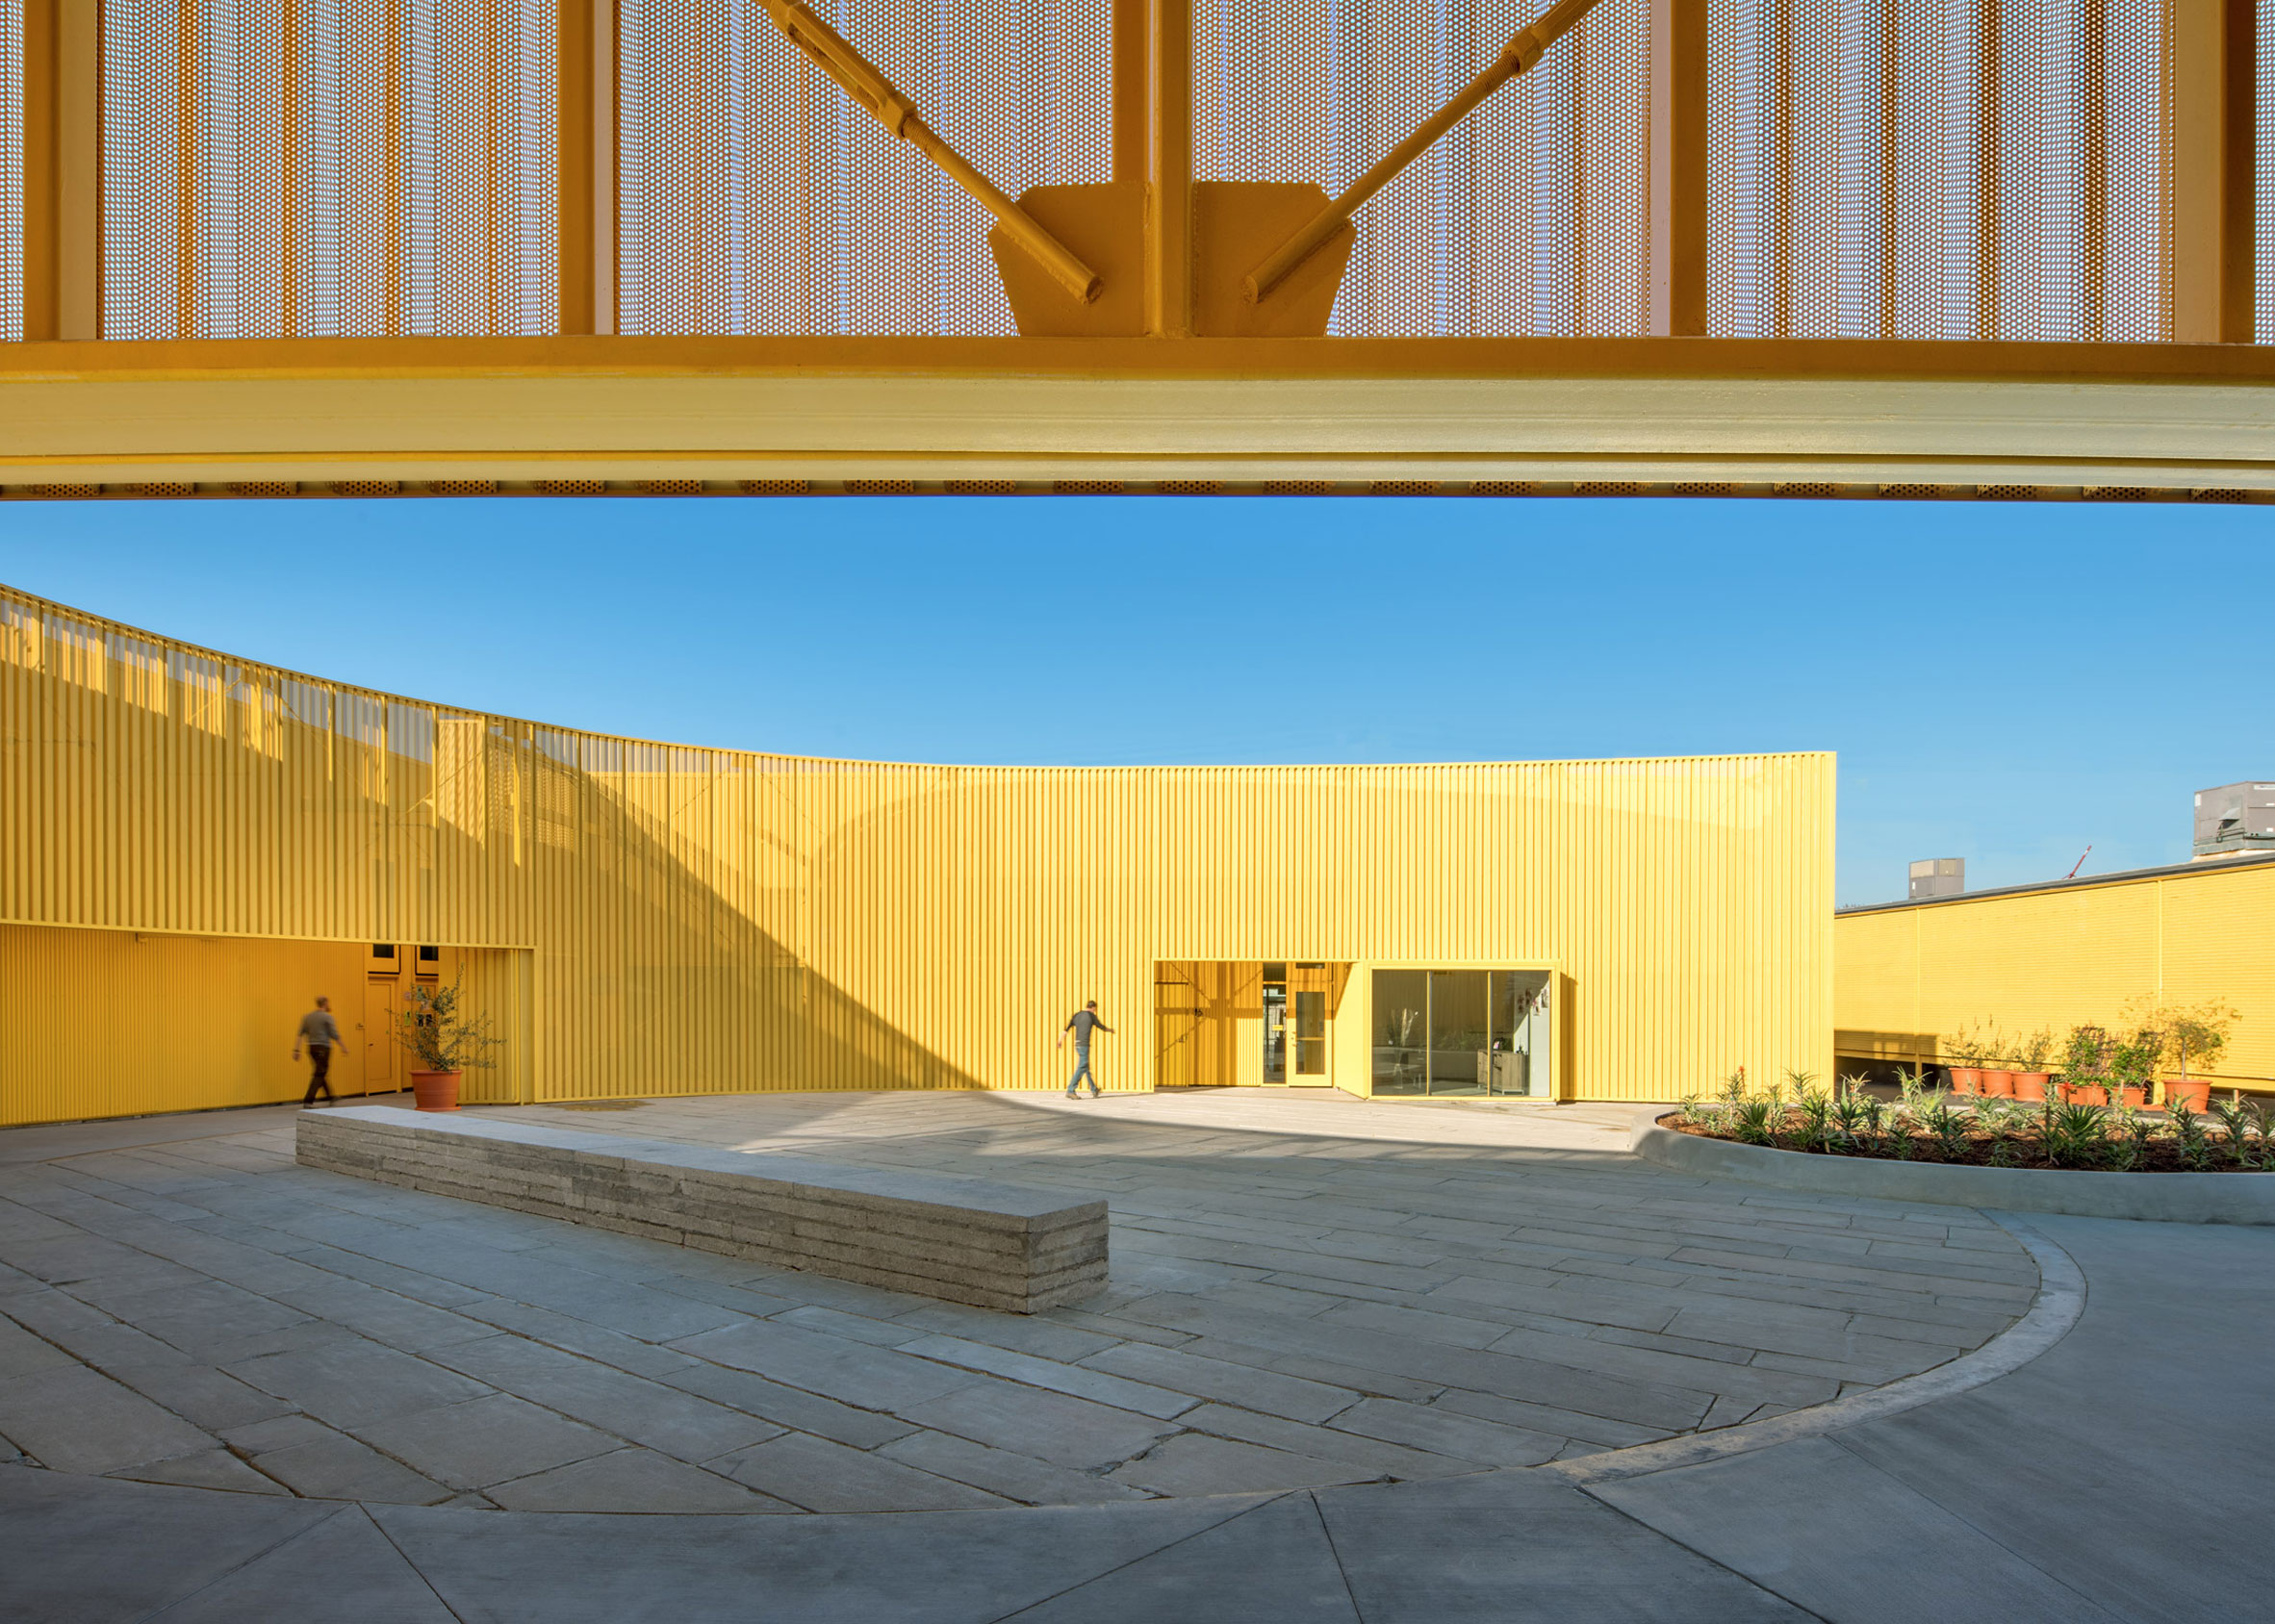 Animo South Los Angeles High School by Brooks + Scarpa